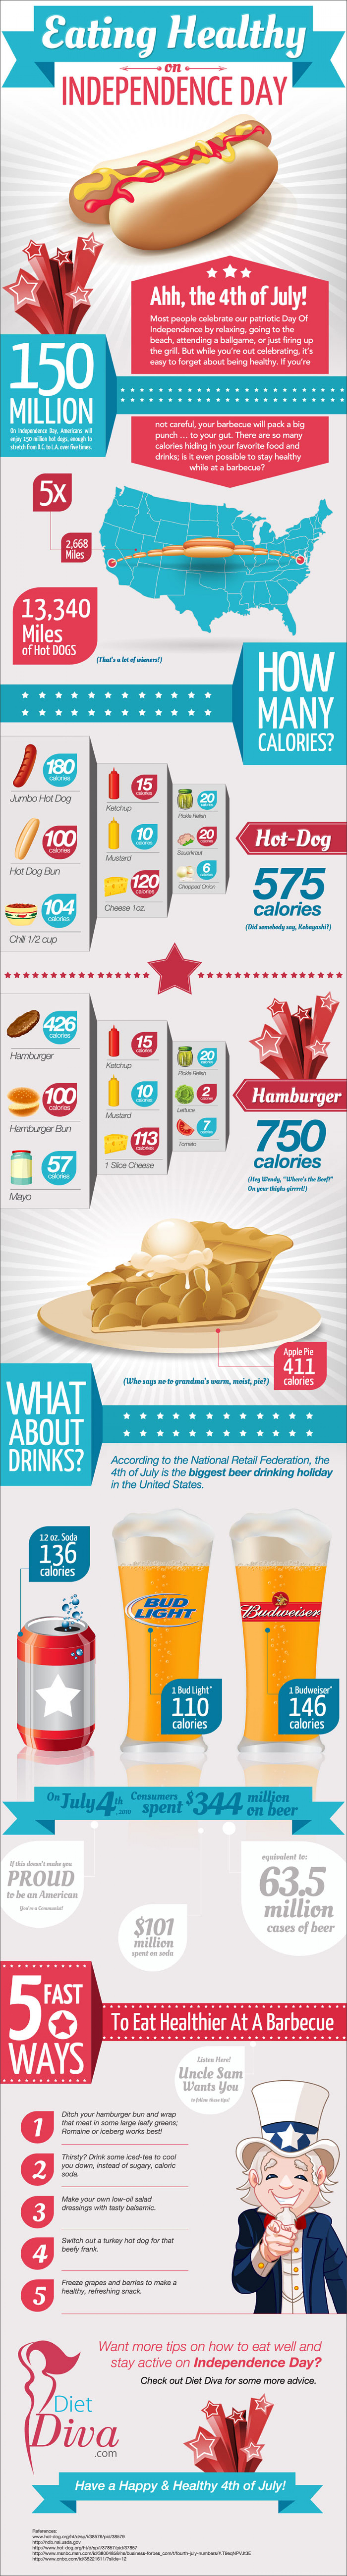 Eating healthy on Independence Day Infographic